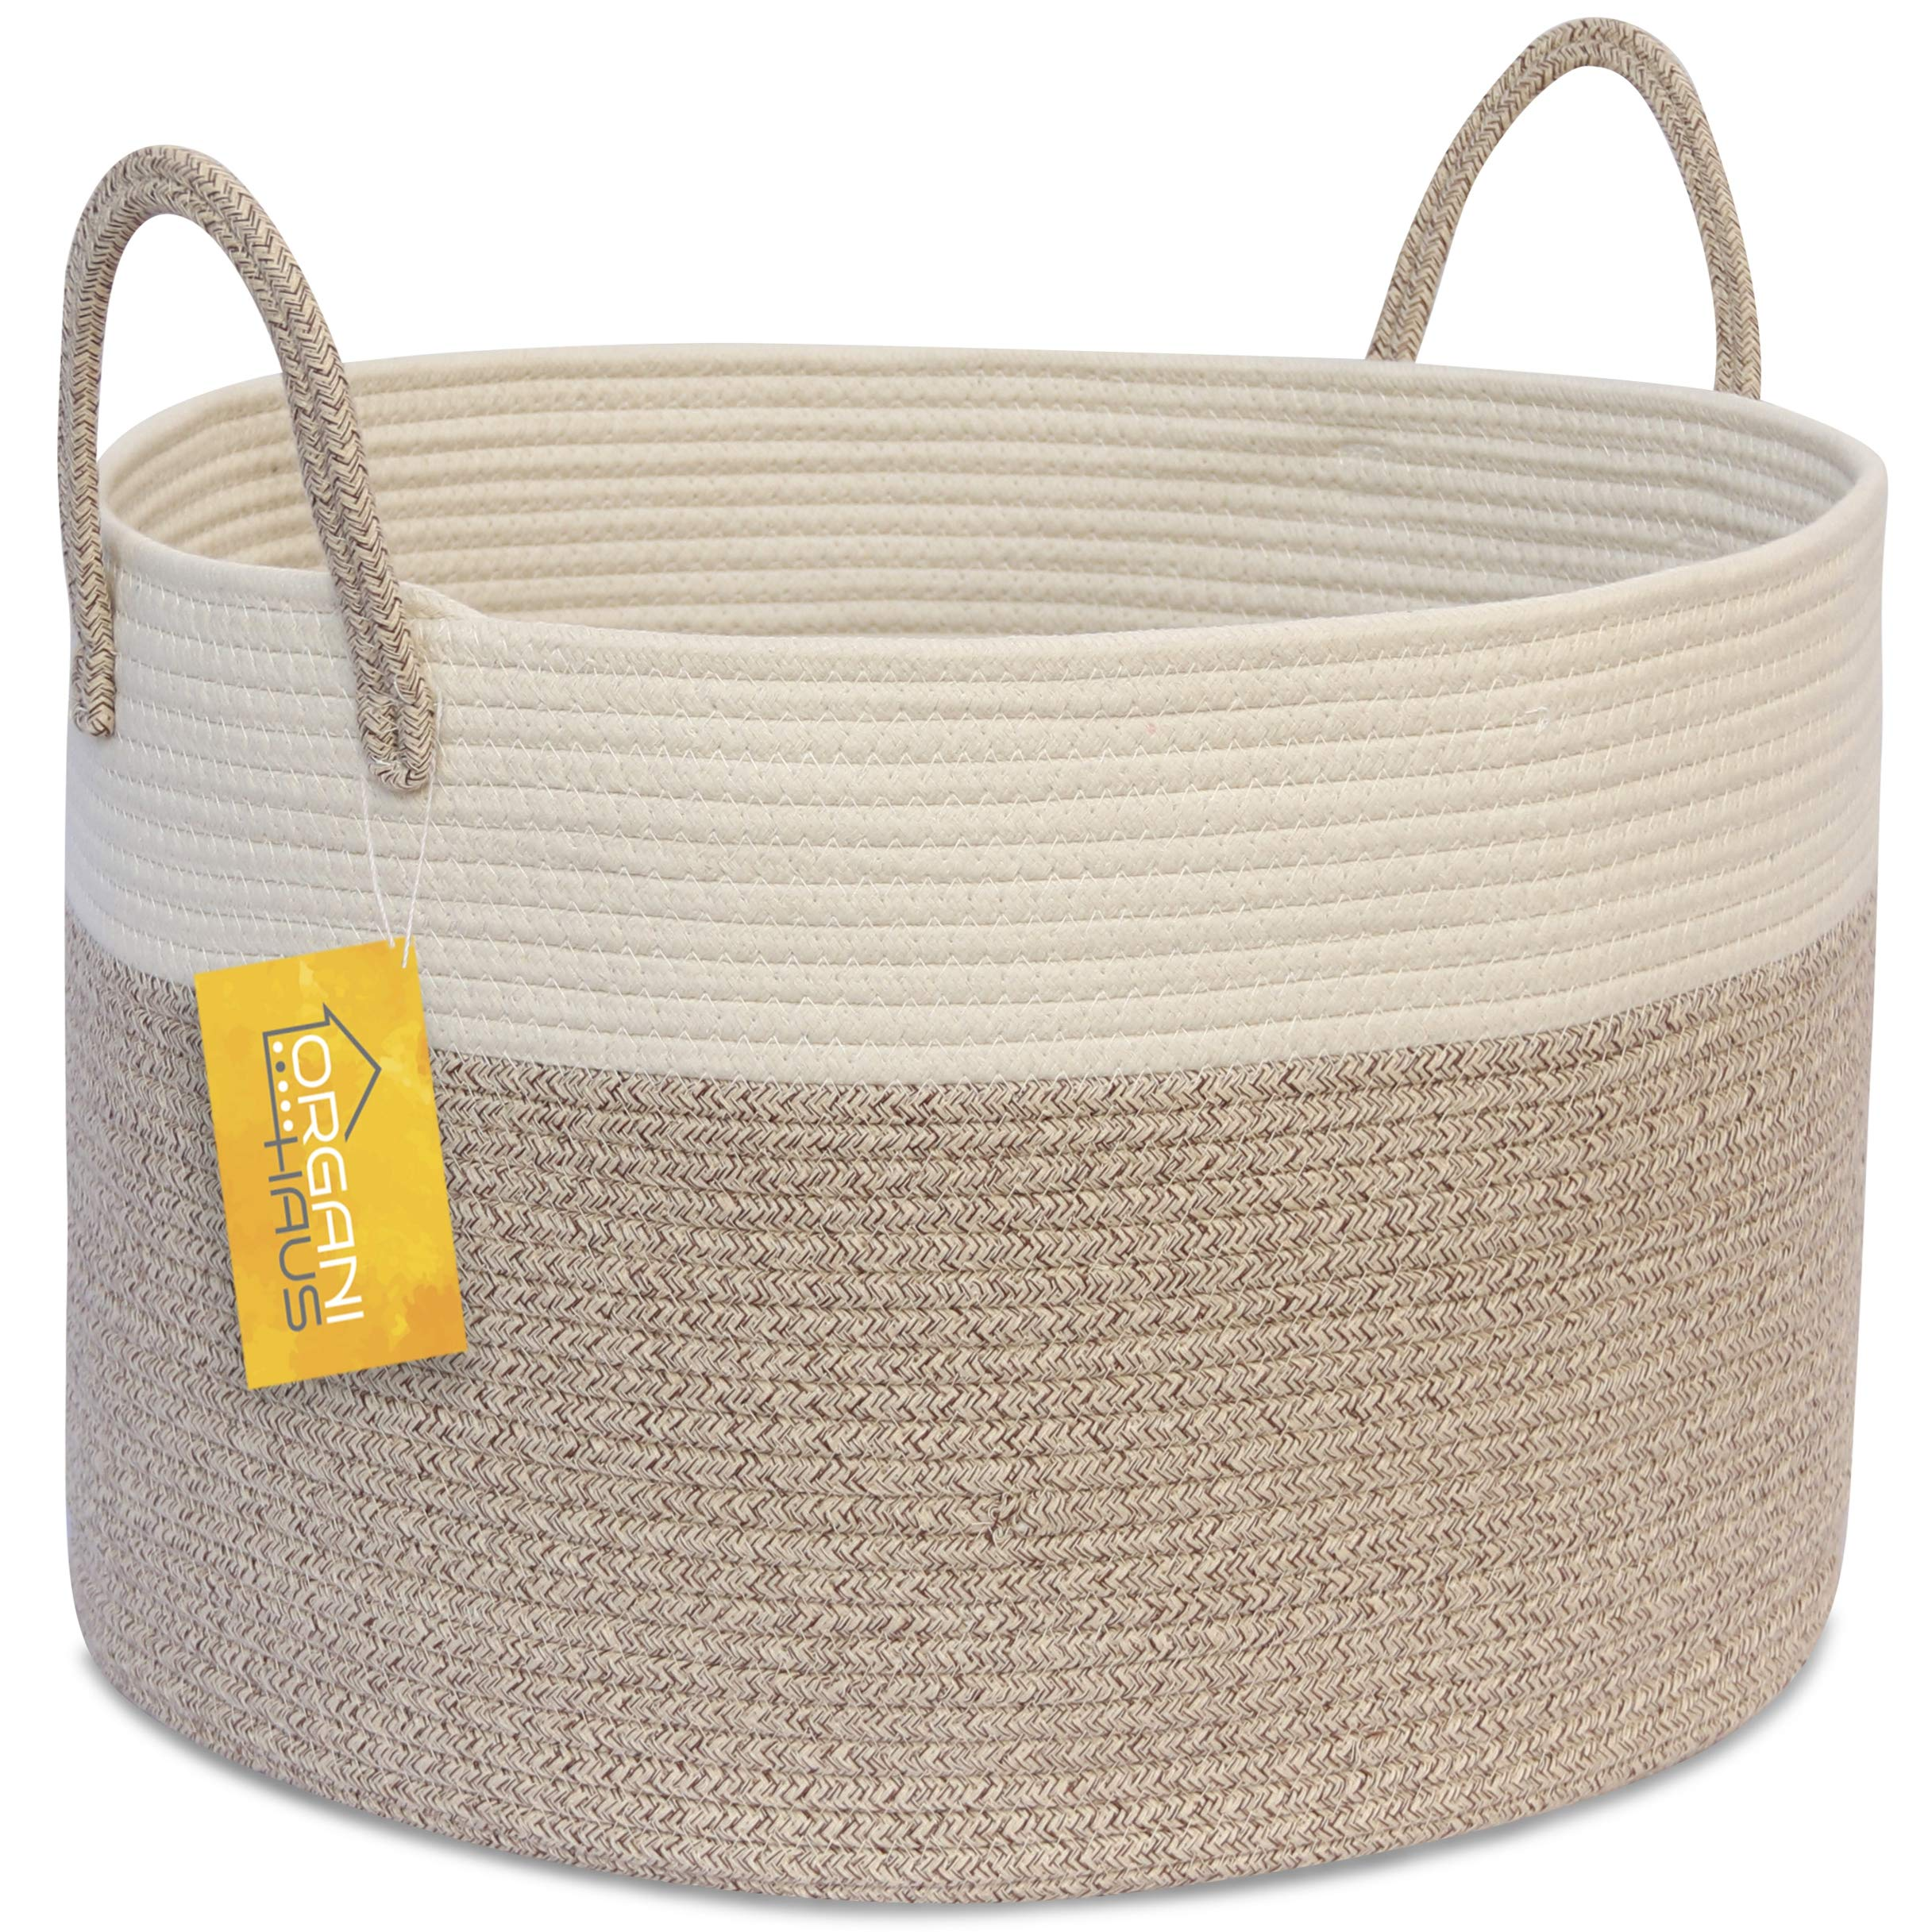 661c7b415e89 Best Rated in Laundry Baskets   Helpful Customer Reviews - Amazon.com